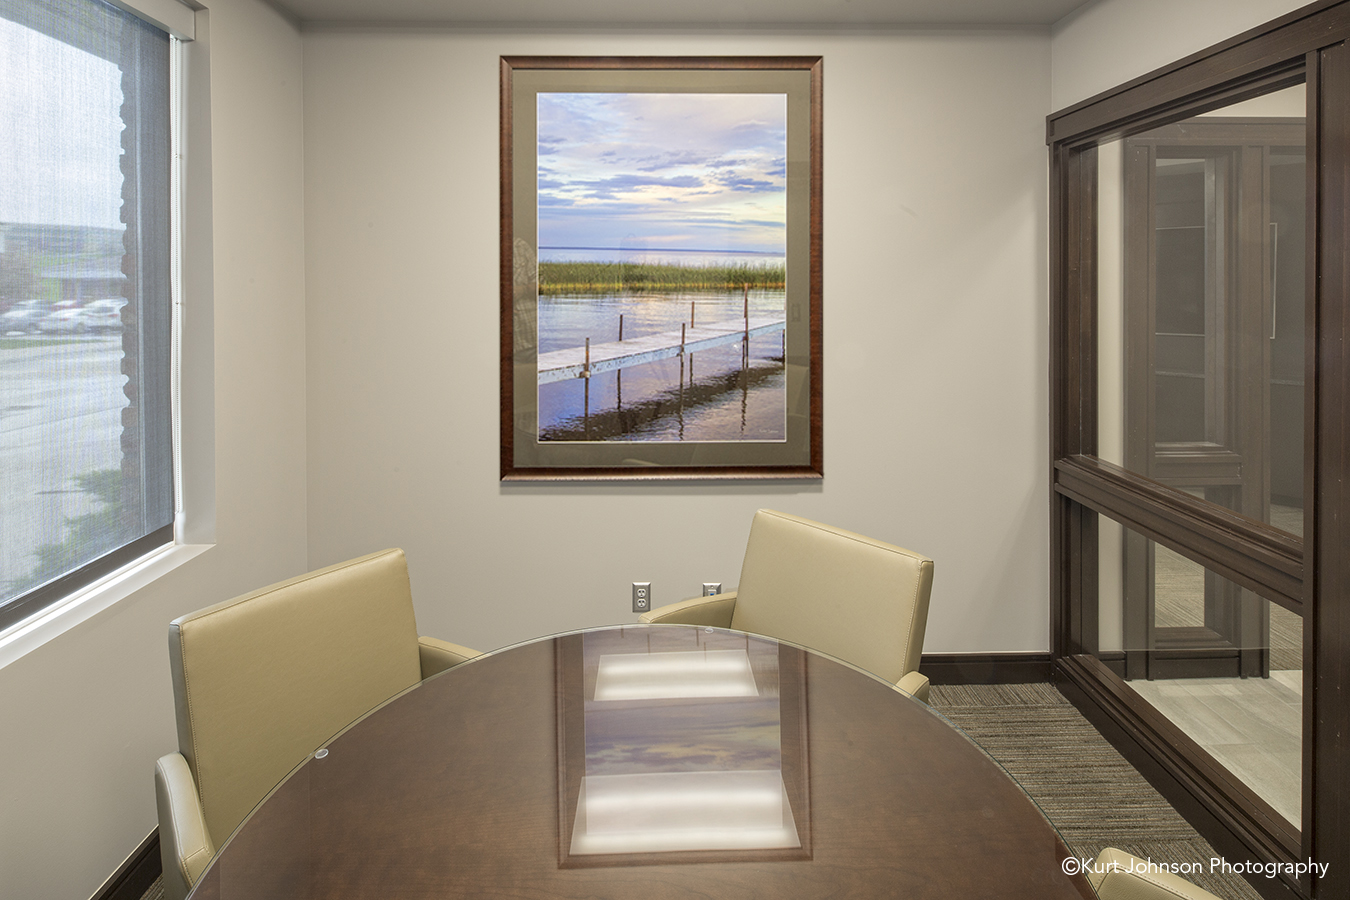 Sodero Law Install framed fine wall art Nebraska healing waterscape landscape healthcare design photography